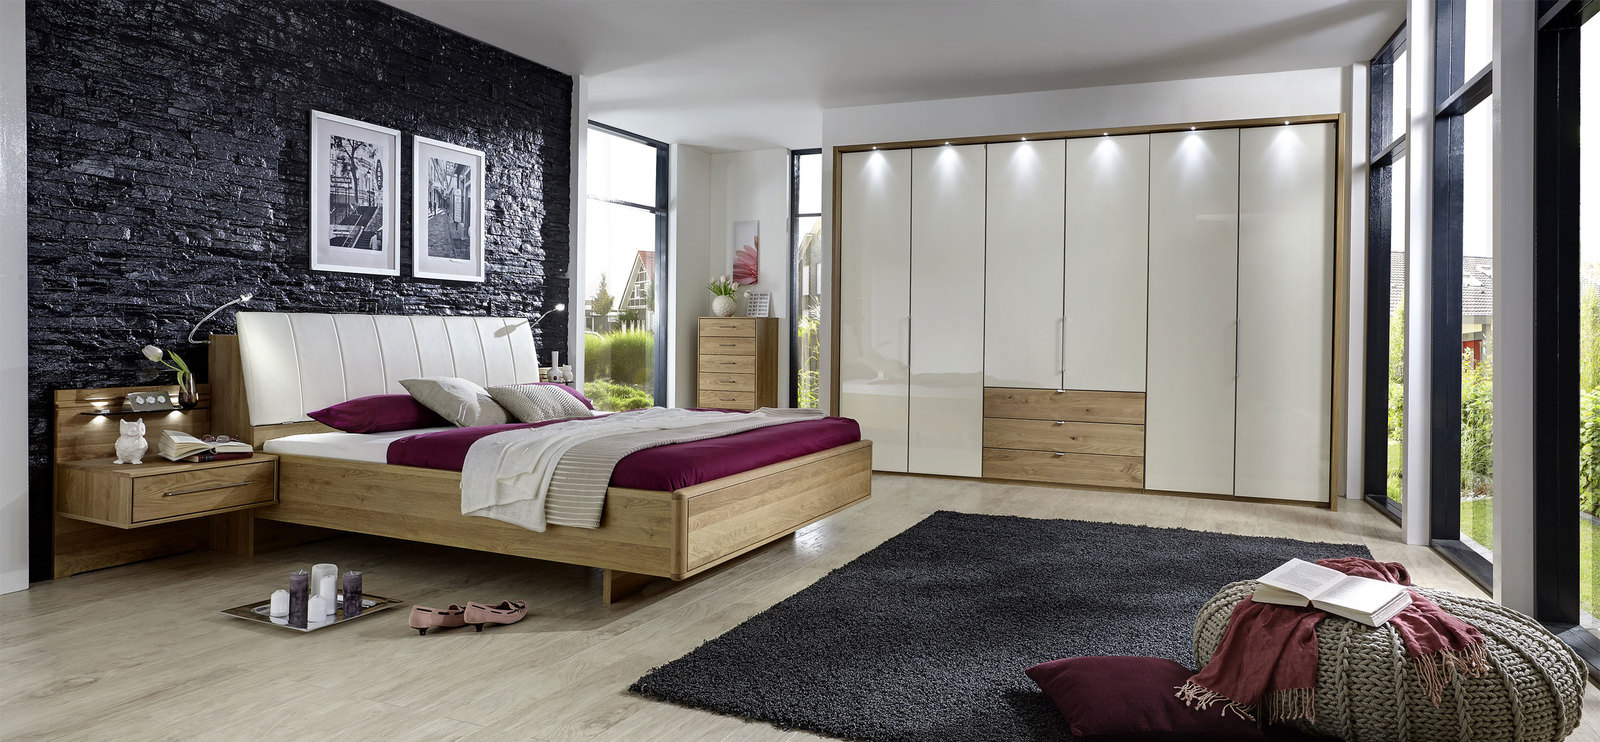 mondo schlafzimmer badezimmer schlafzimmer sessel m bel design ideen. Black Bedroom Furniture Sets. Home Design Ideas